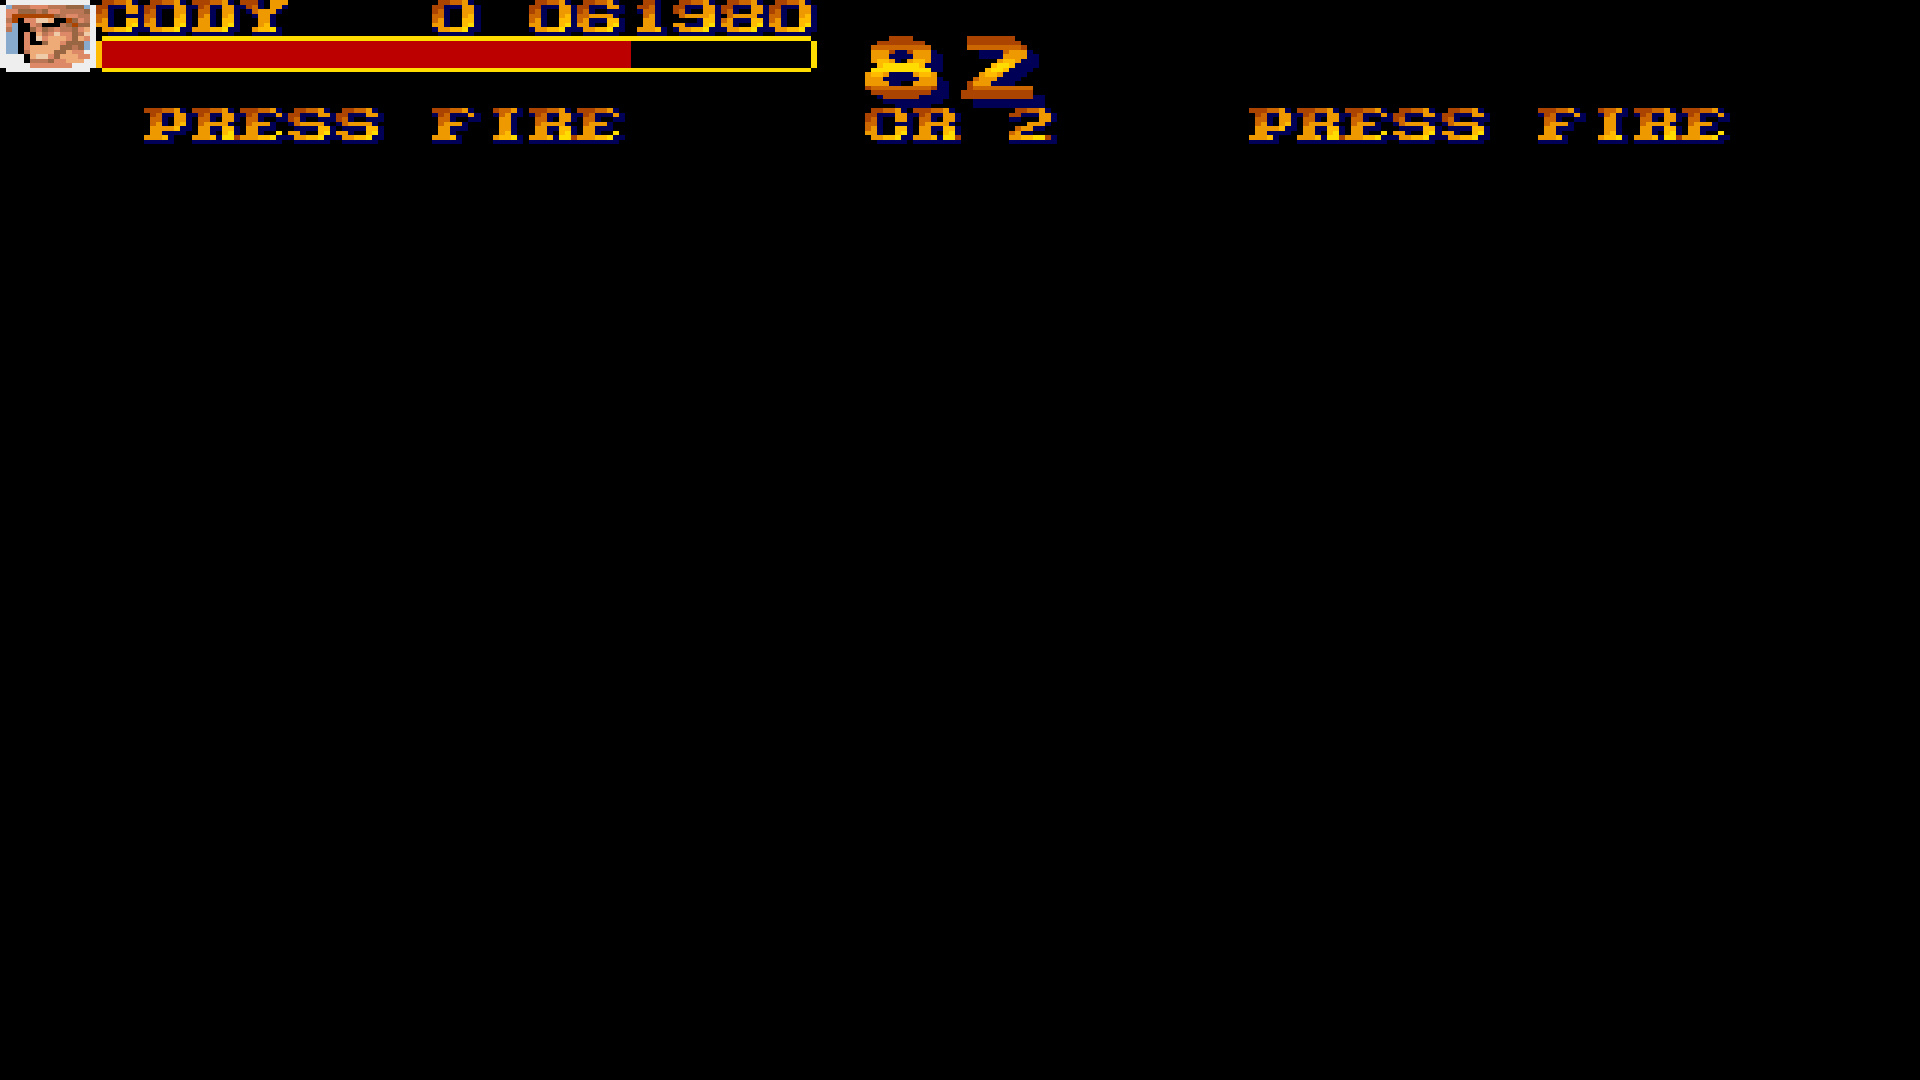 Final Fight 61,980 points